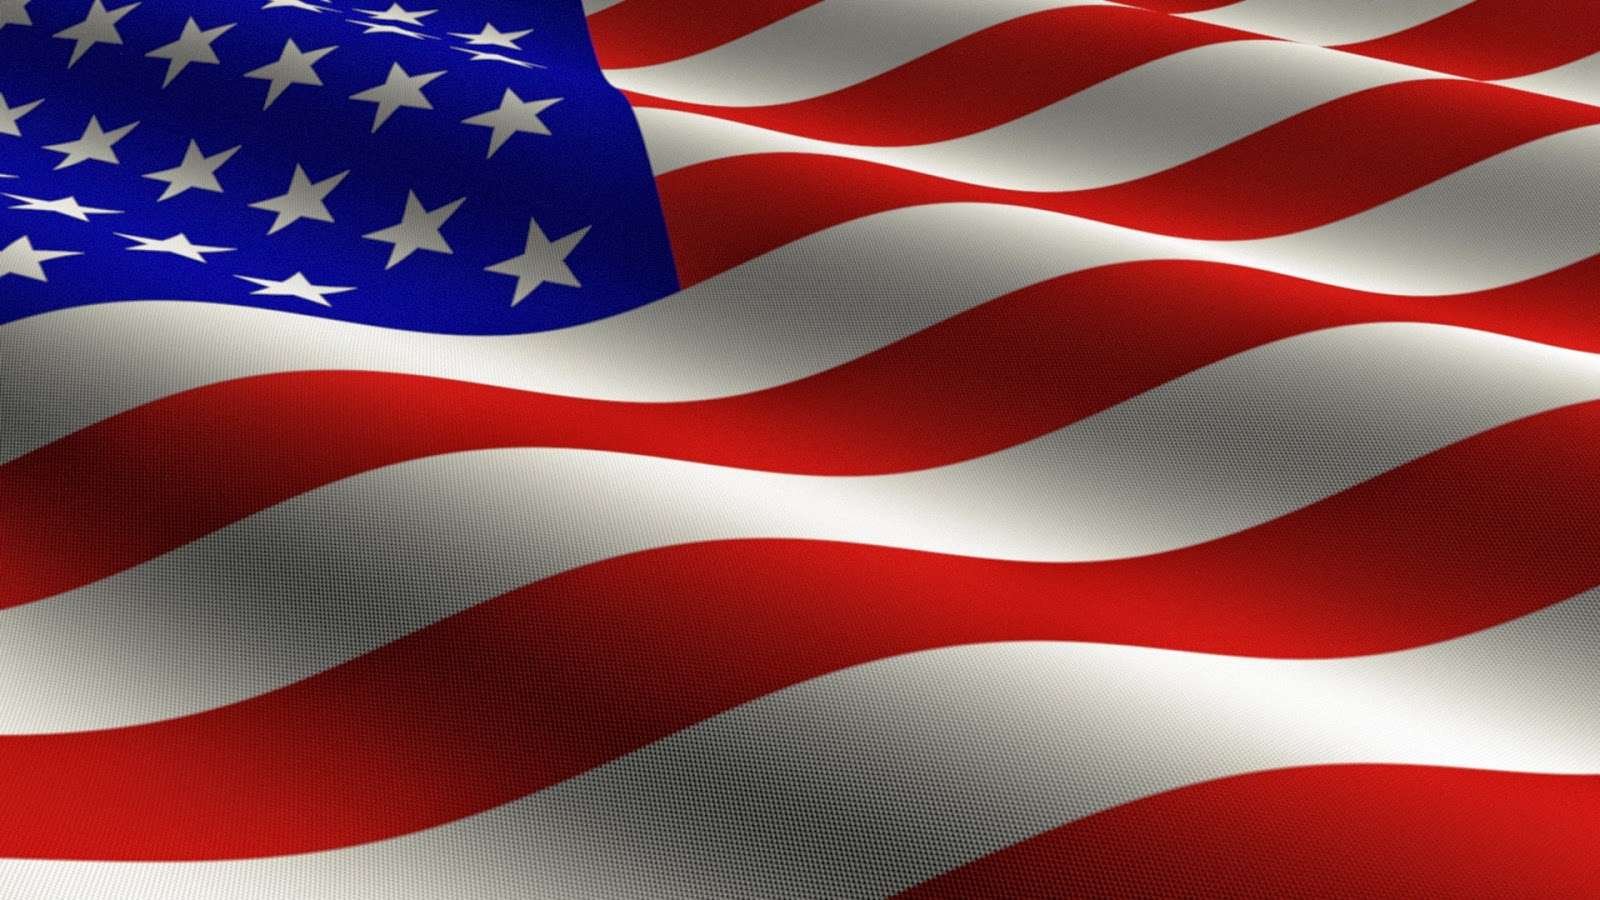 Beautiful Rippled USA American Flag Images Wallpapers for 4th of July